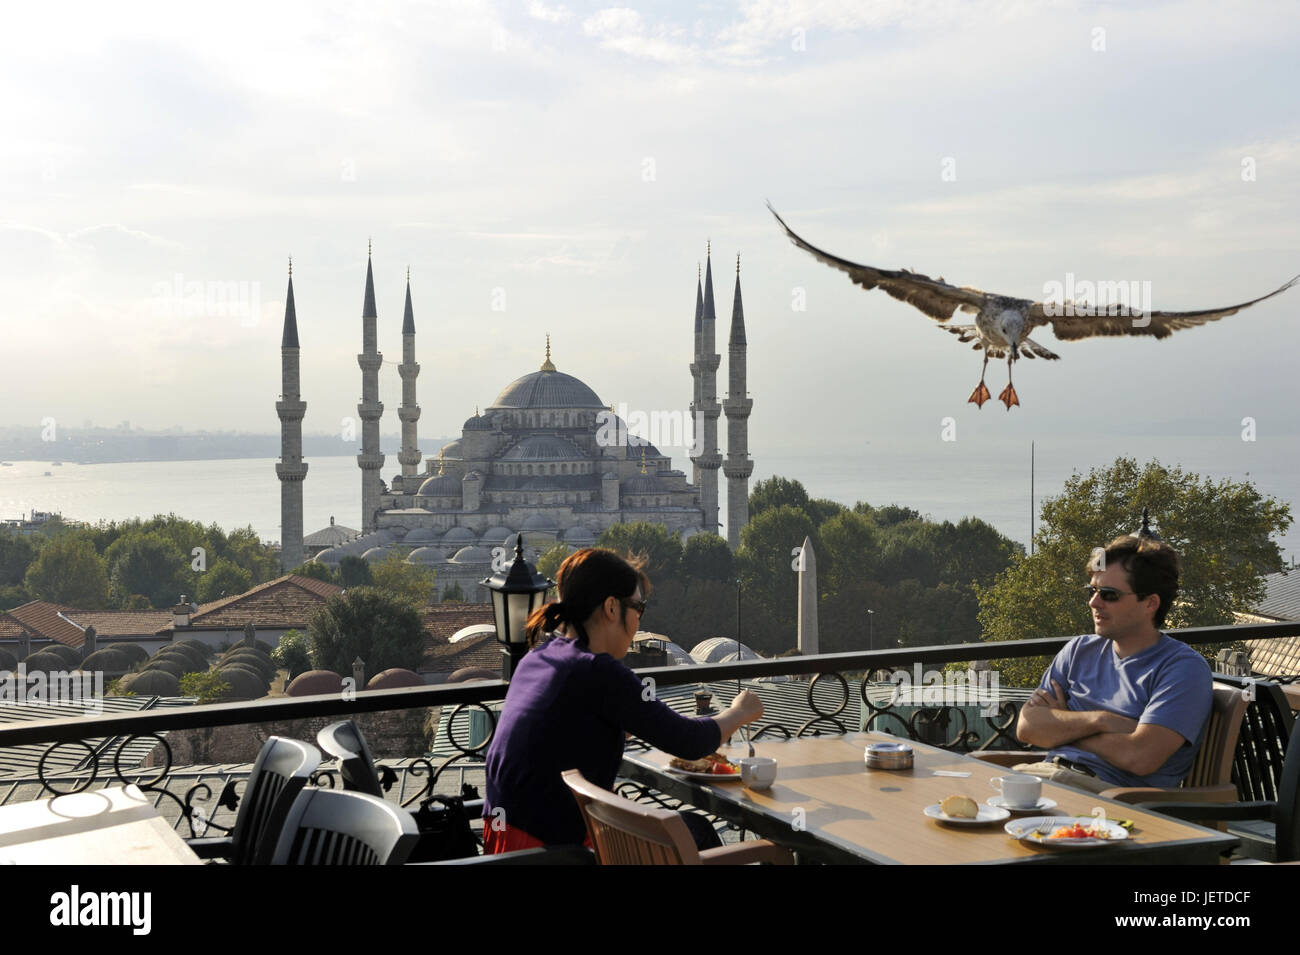 Turkey, Istanbul, sultan's Ahmed's mosque, blue mosque, tourist and a gull in the foreground, - Stock Image